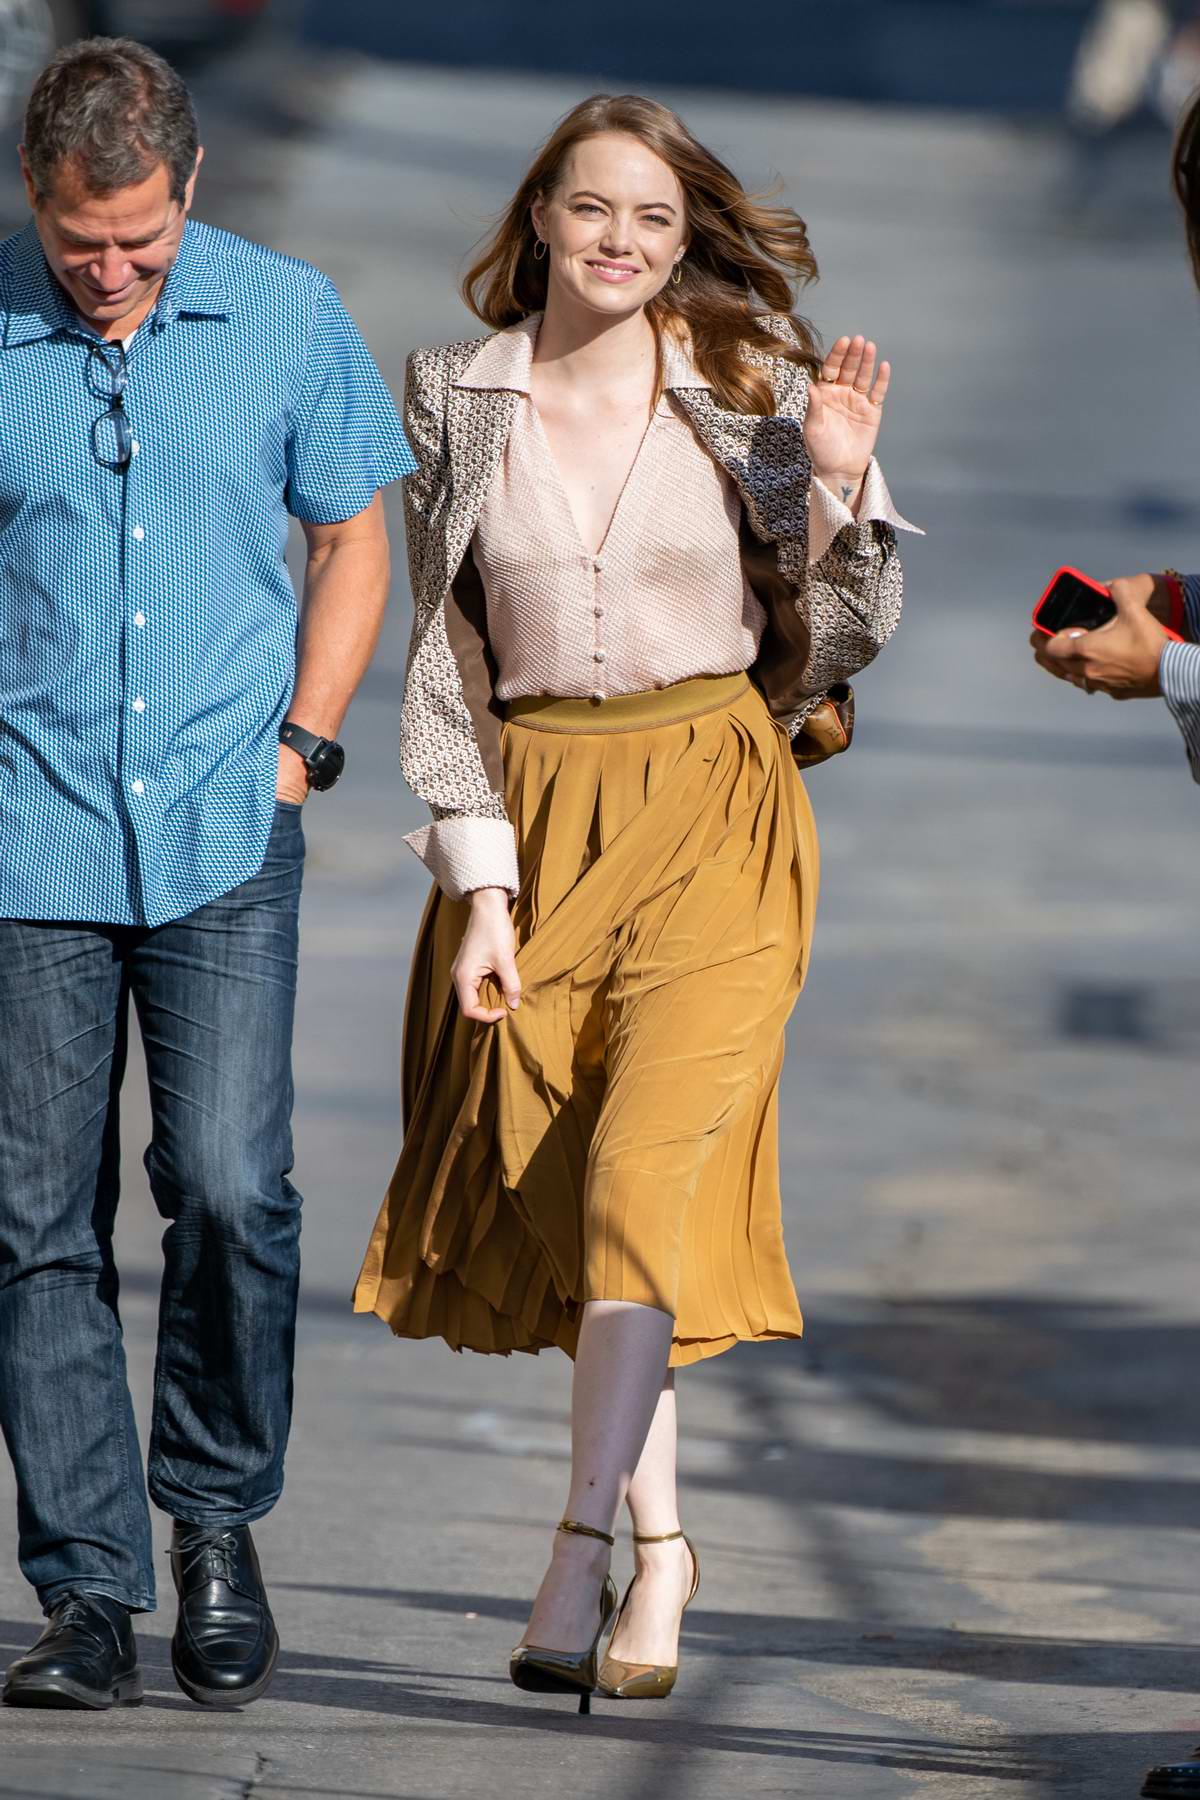 Emma Stone is all smiles as she arrives for an appearance on 'Jimmy Kimmel Live!' in Hollywood, California